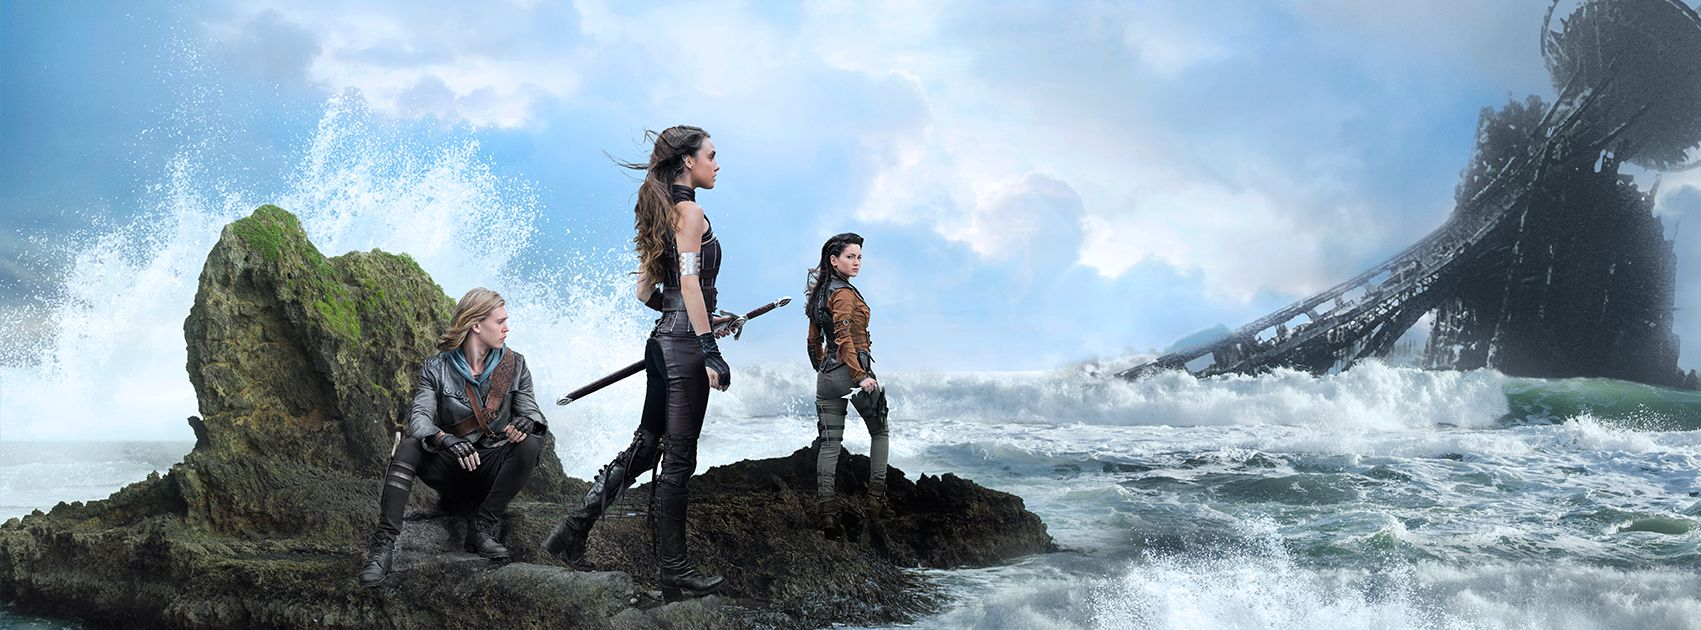 shannara chronicles episode 4 1080p projector